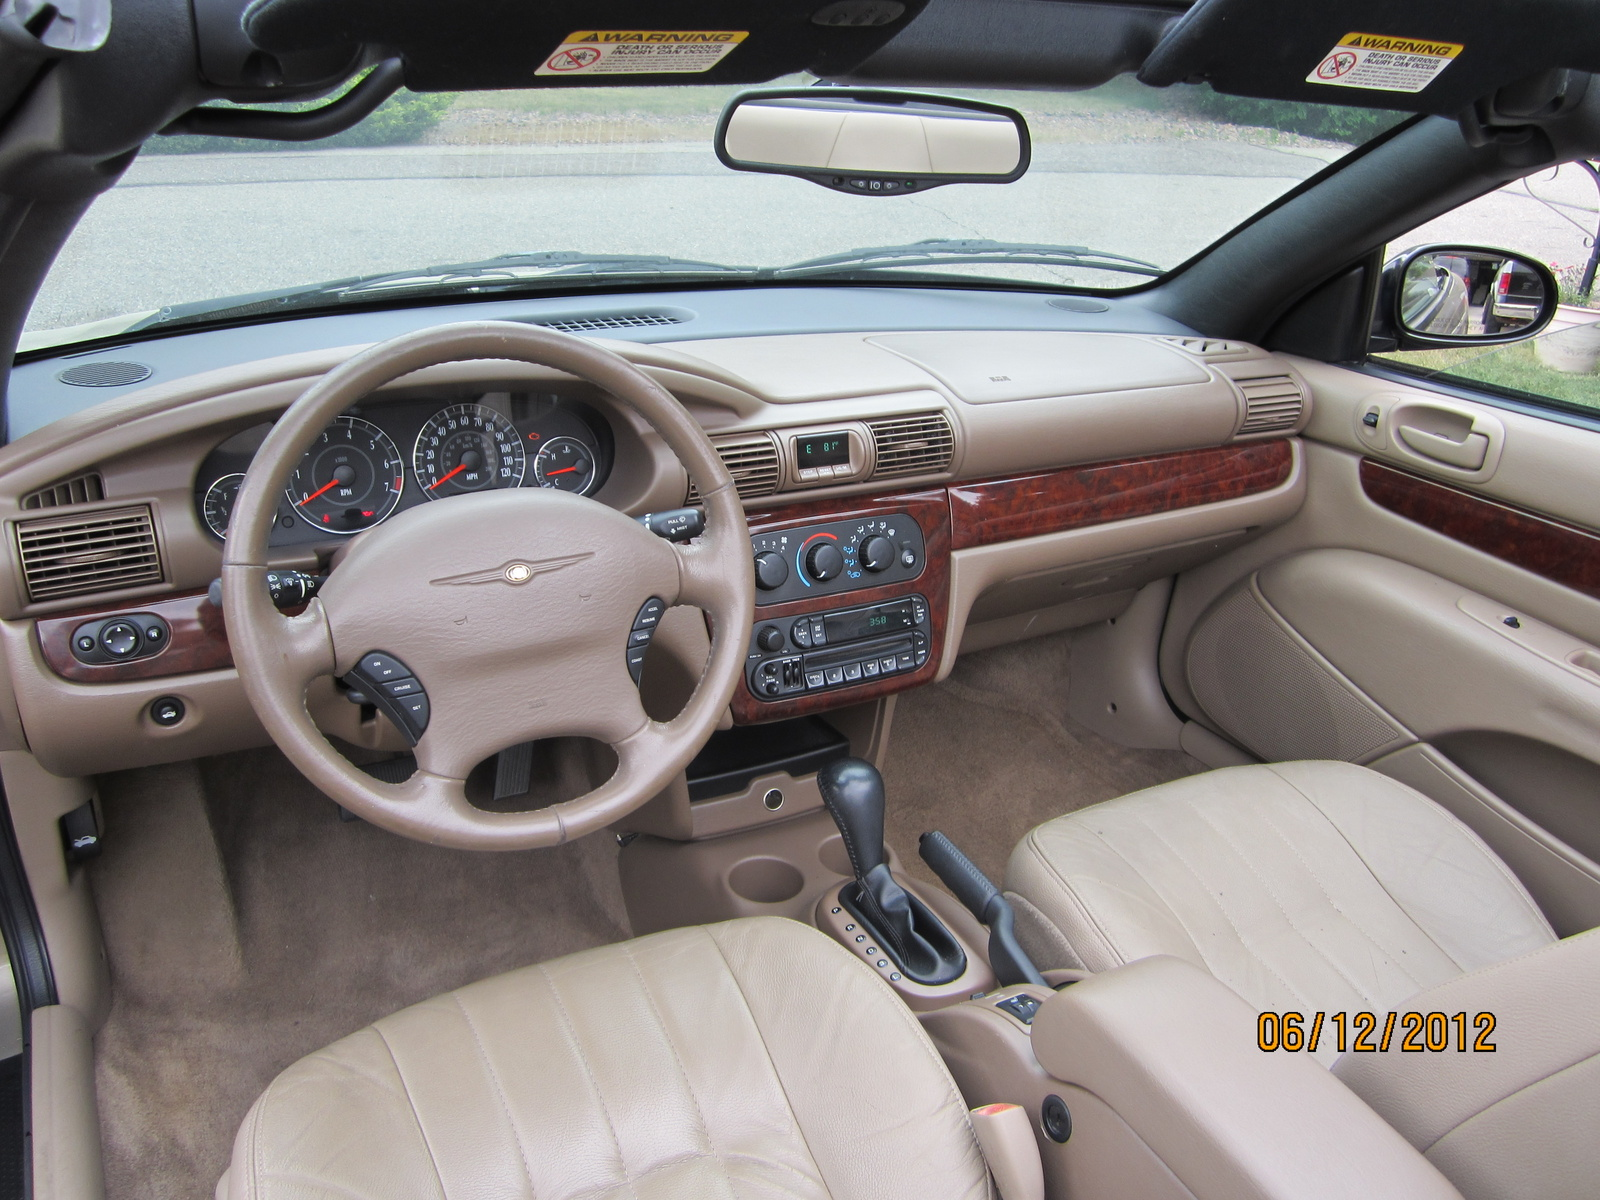 chrysler sebring pictures #12